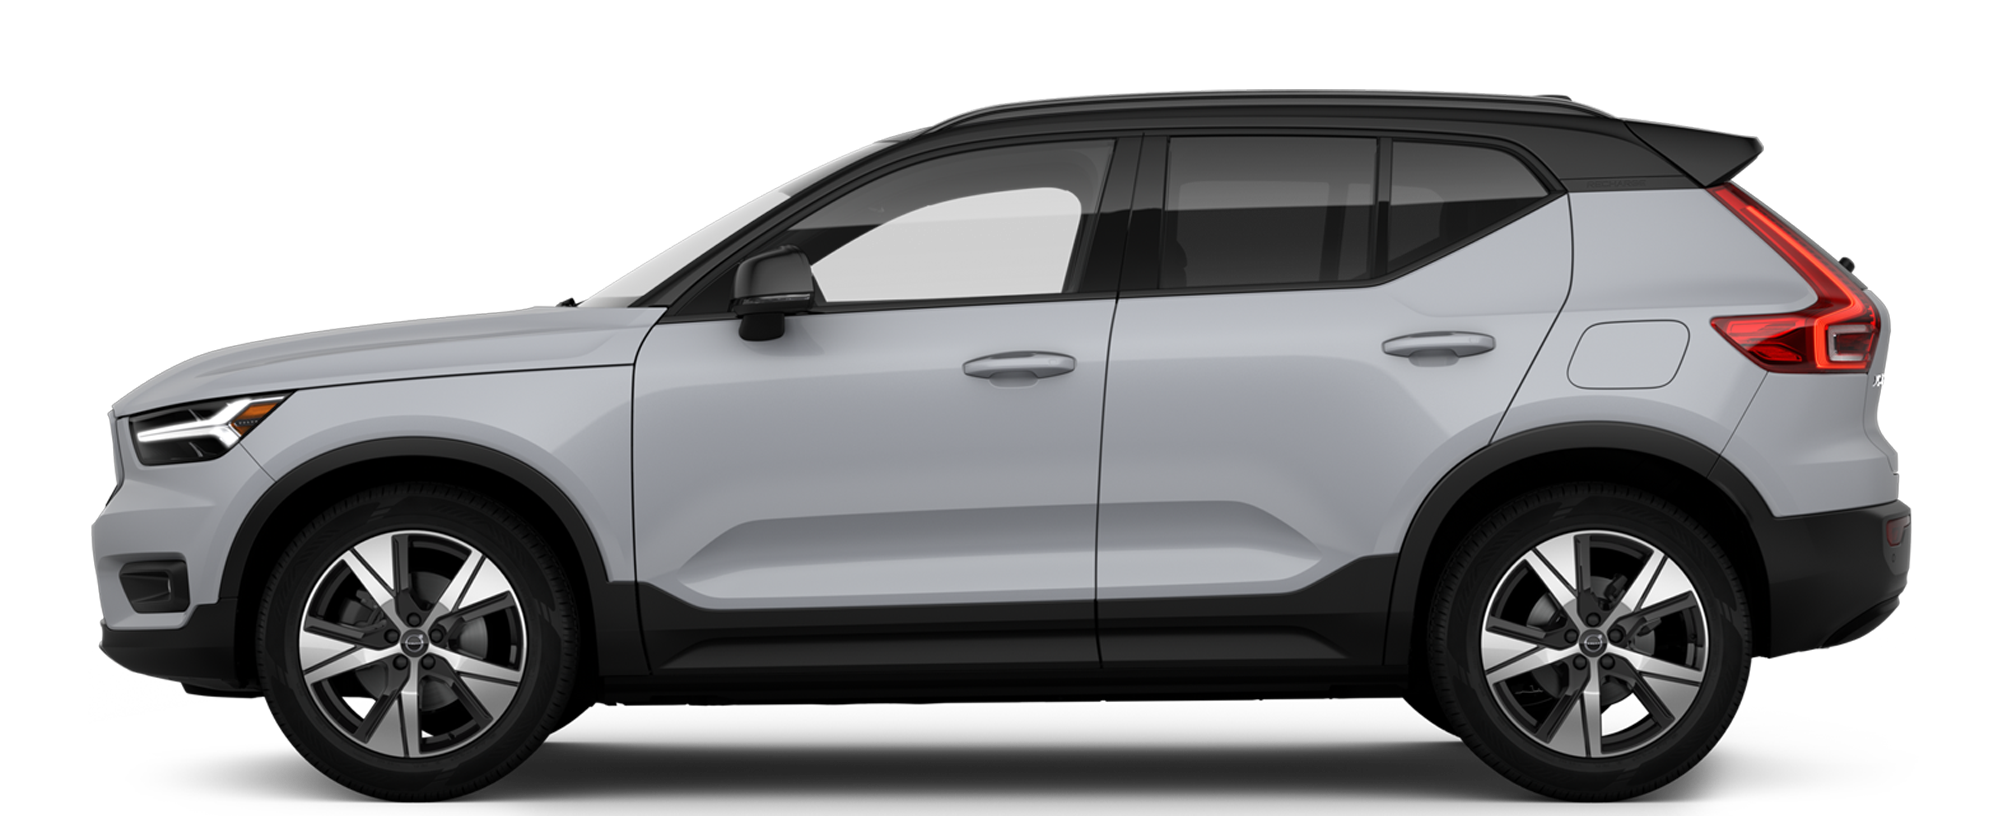 2021 Volvo XC40 Recharge Pure Electric SUV P8